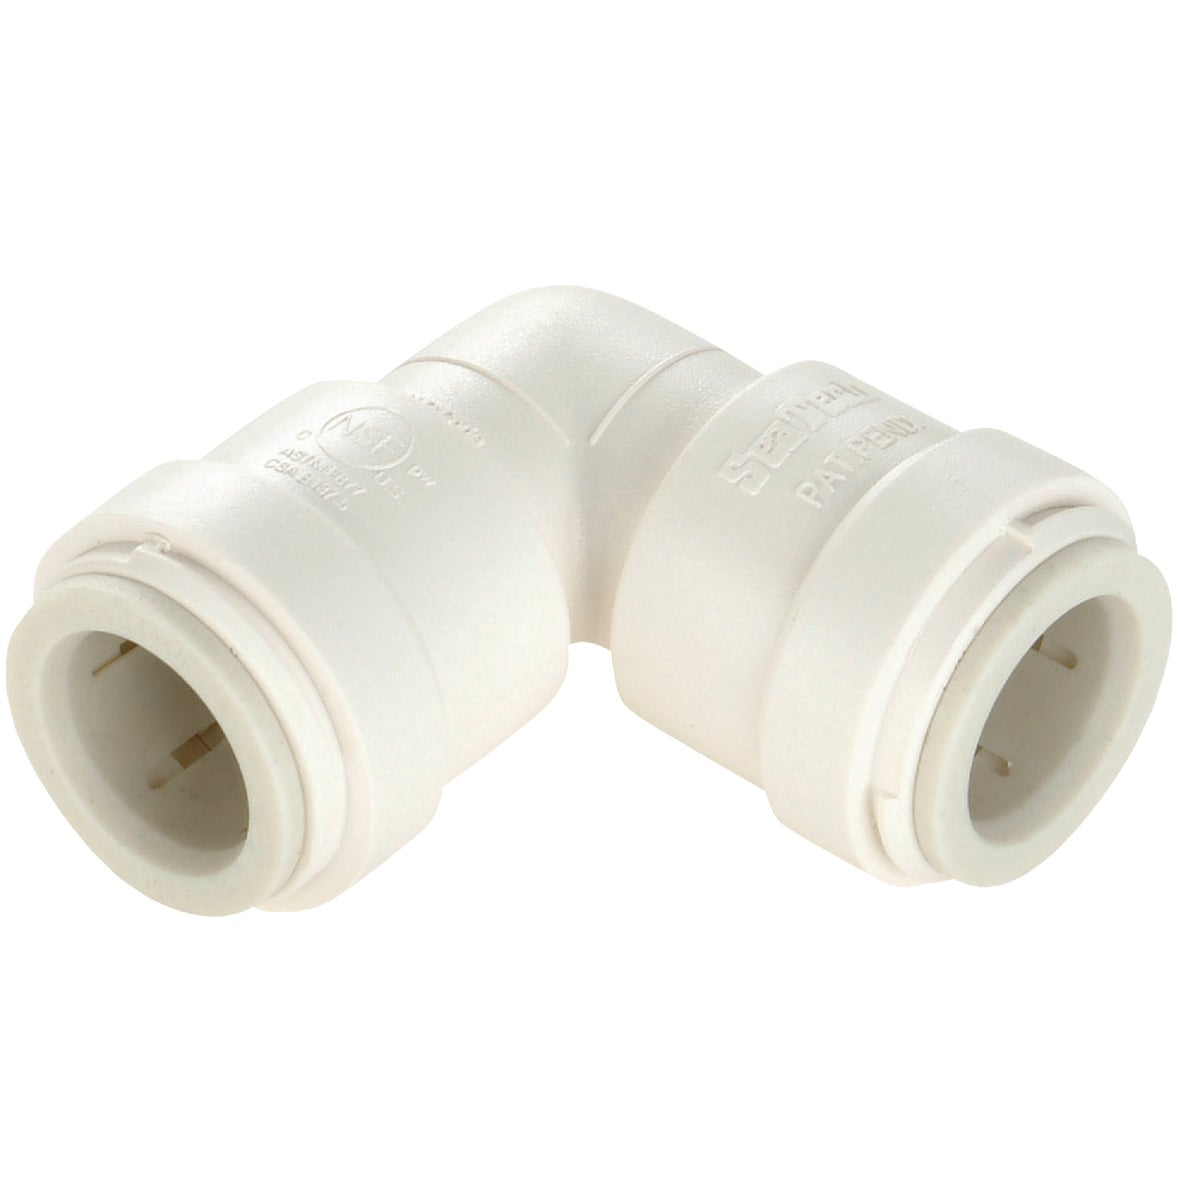 "1/2X1/2""CTS Q/C ELBOW - P-620 by Watts Pex"